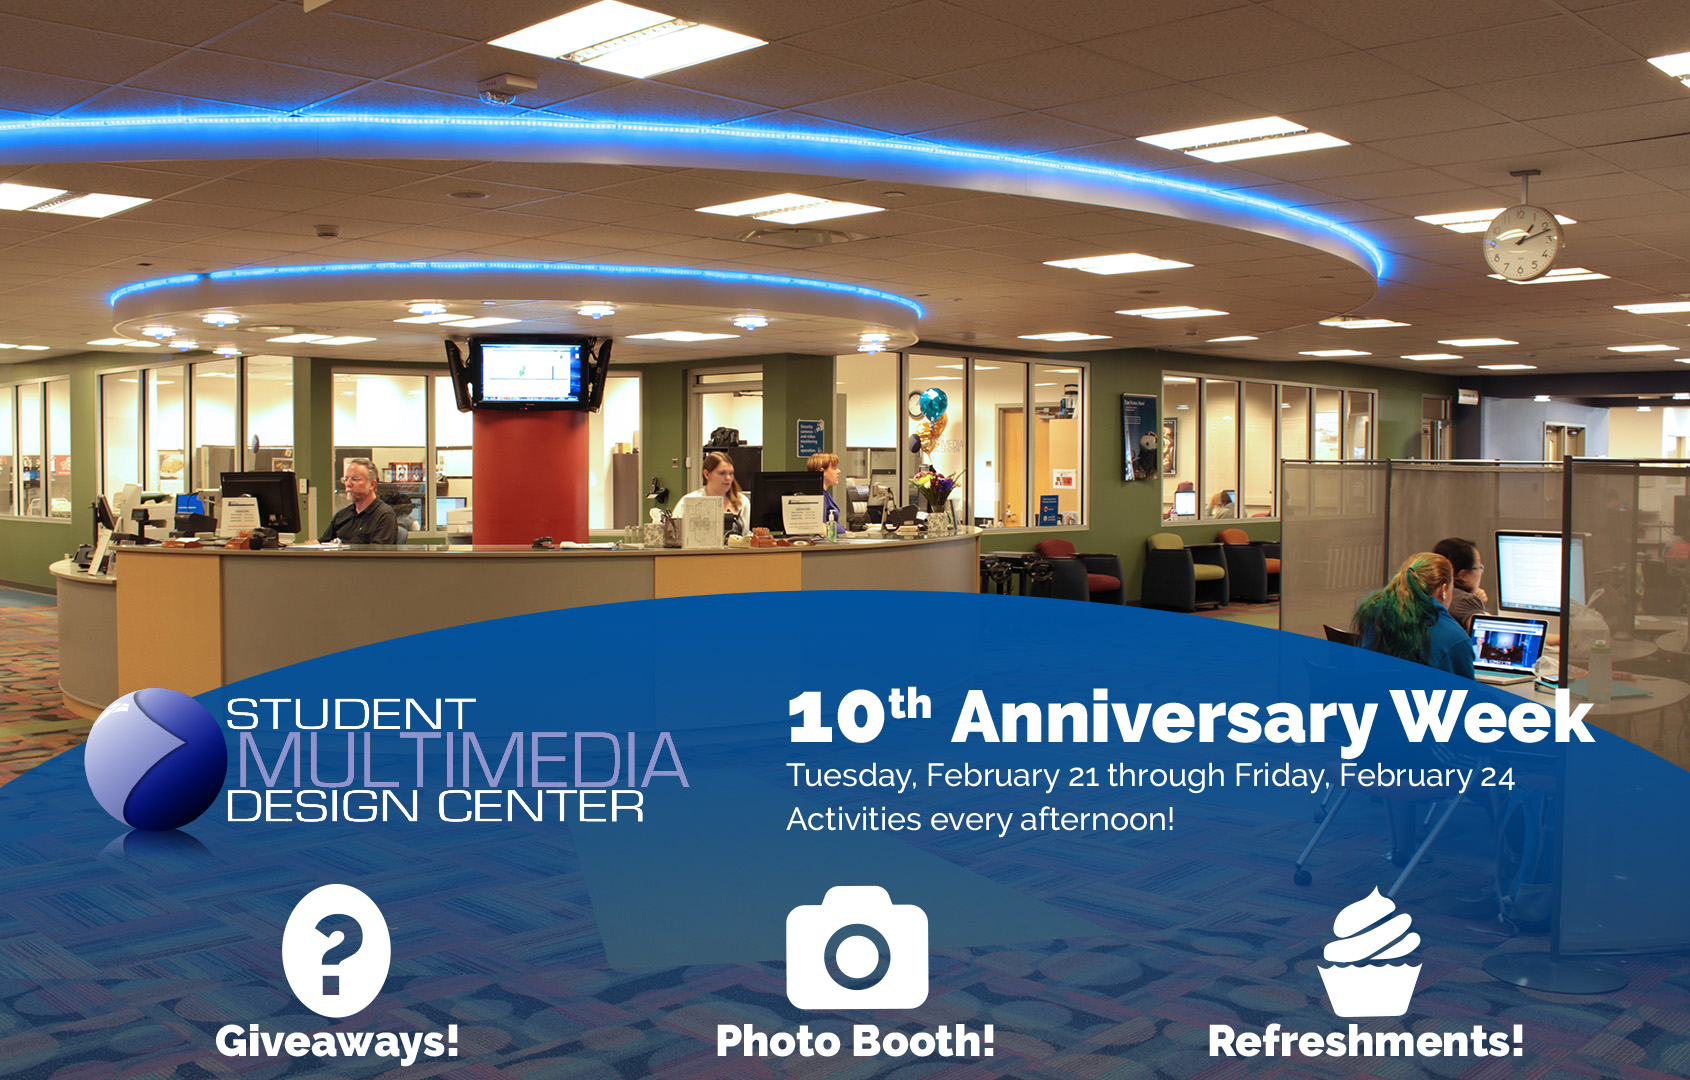 Student Multimedia Design Center (SMDC), 10th Anniversary Week, Tuesday February 21 through Friday February 24, Activities every afternoon! Giveaways! Photo Booth! Refreshments!